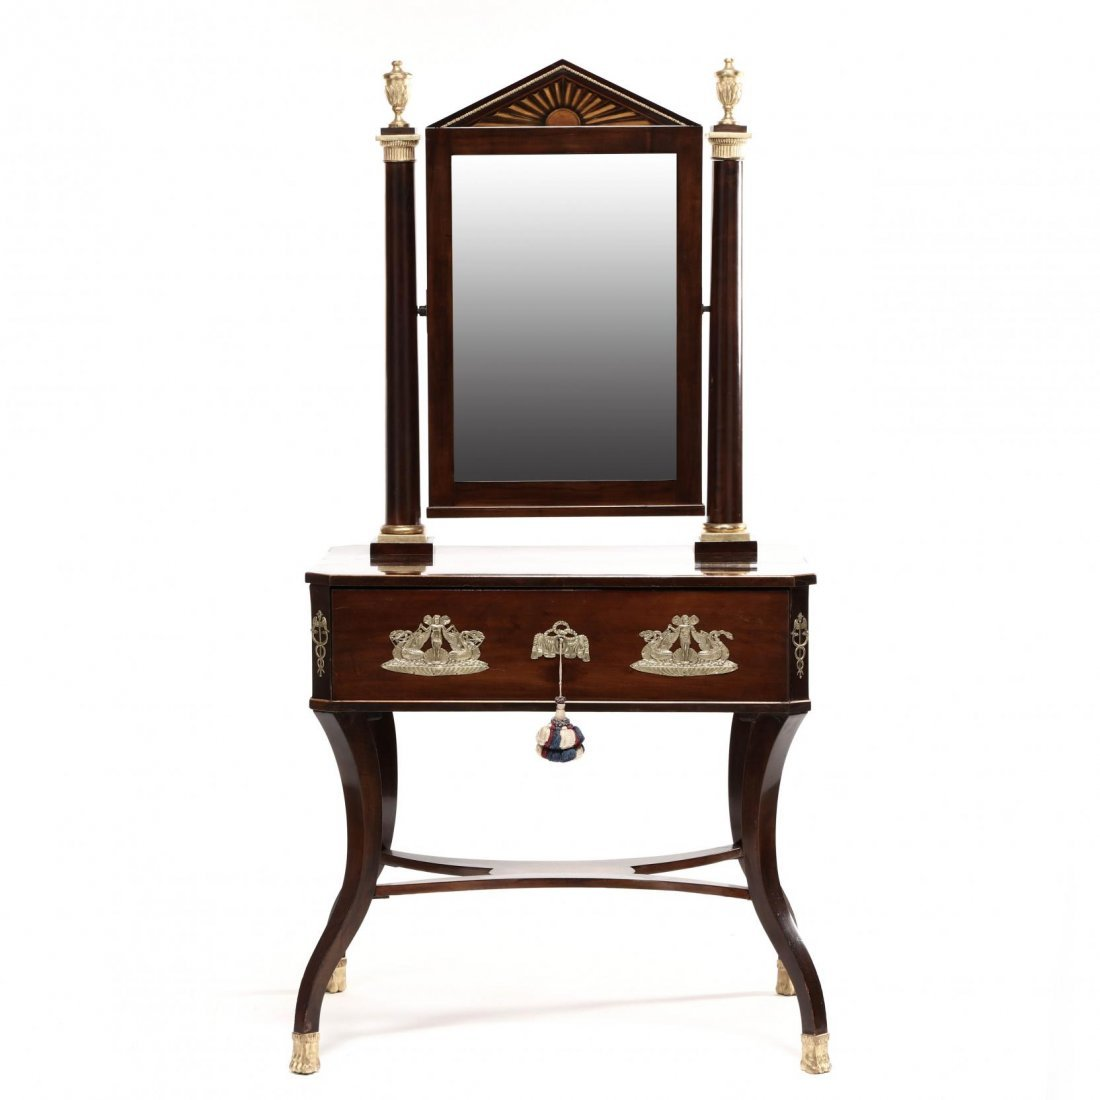 French Classical Revival Dressing Table